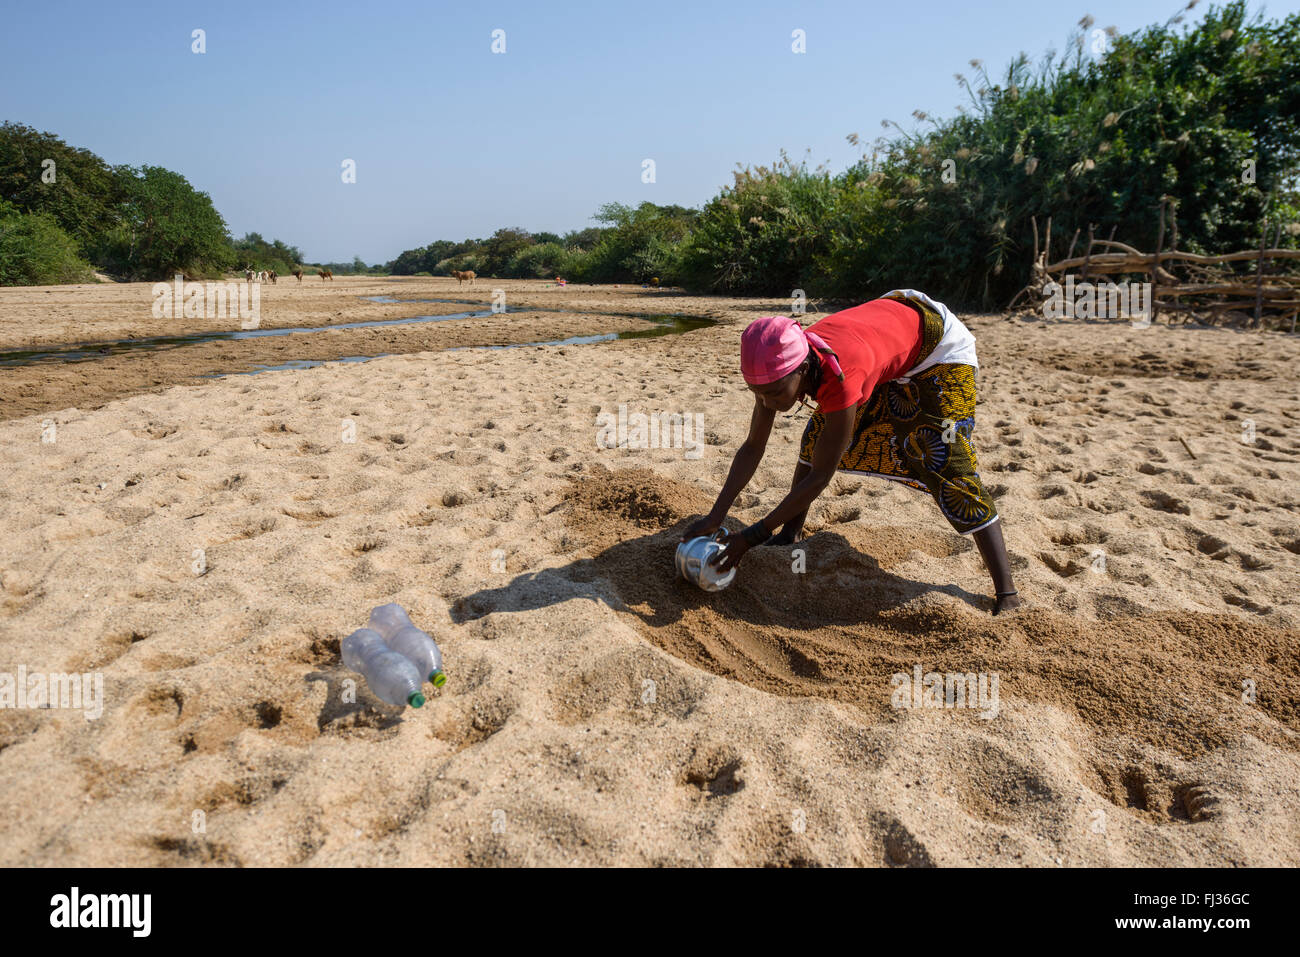 Searching for water, Angola, Africa - Stock Image